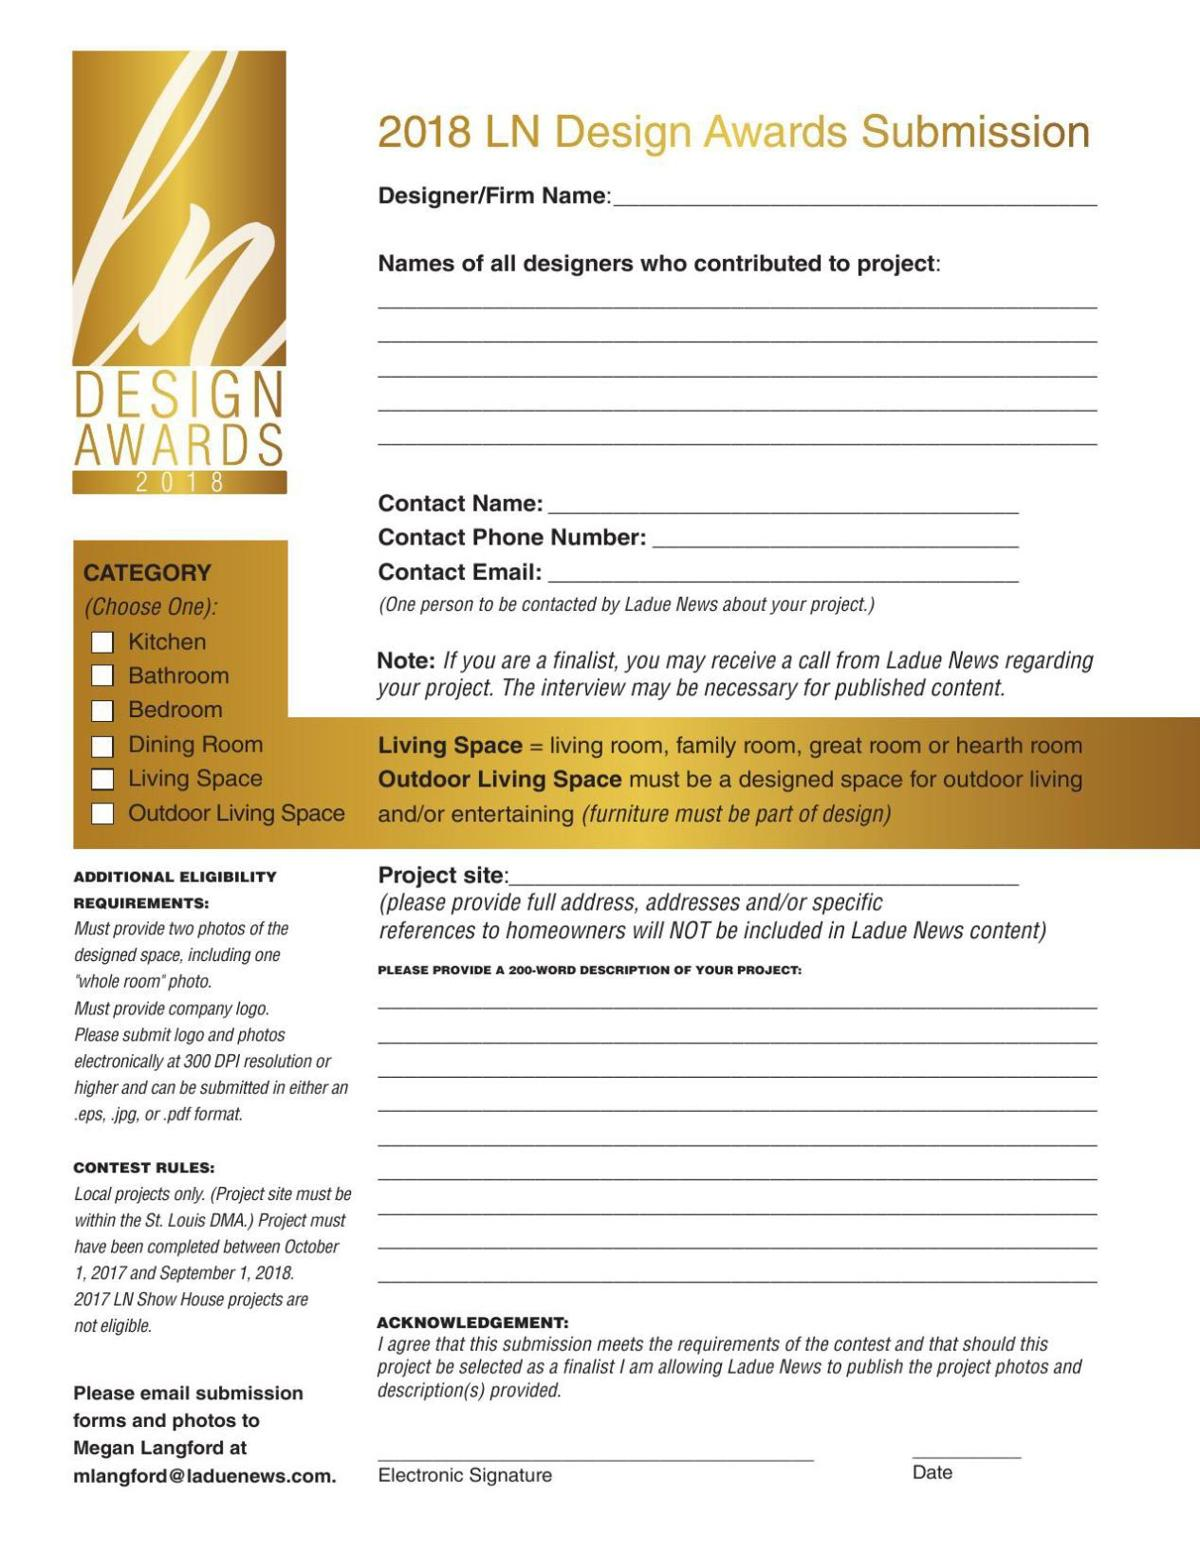 LN Design Awards Application